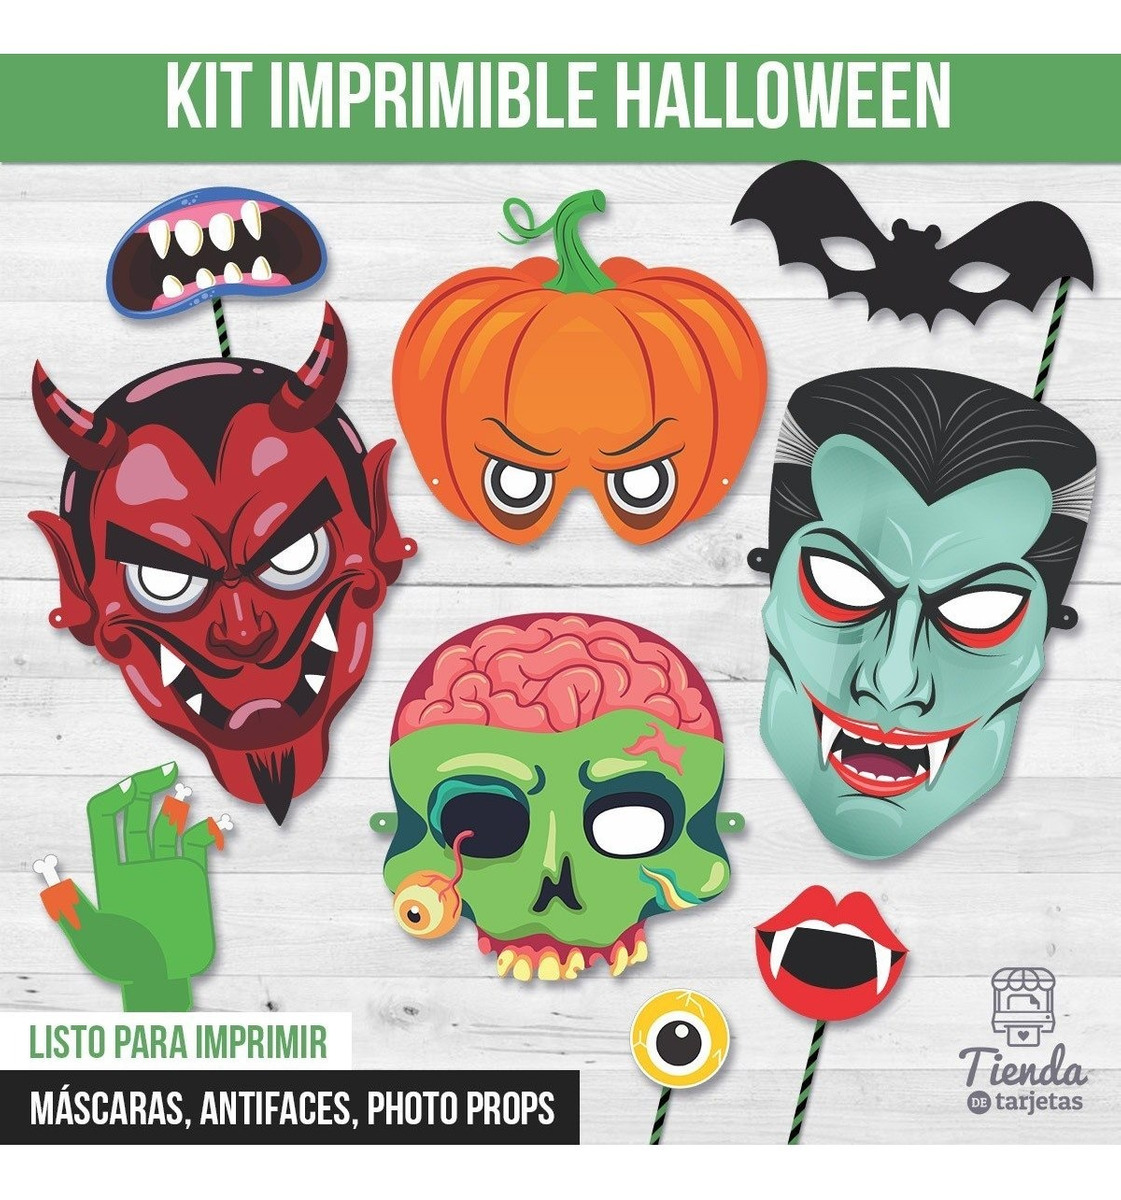 Kit Imprimible Halloween Noche Brujas Mascaras Photo Booth 300